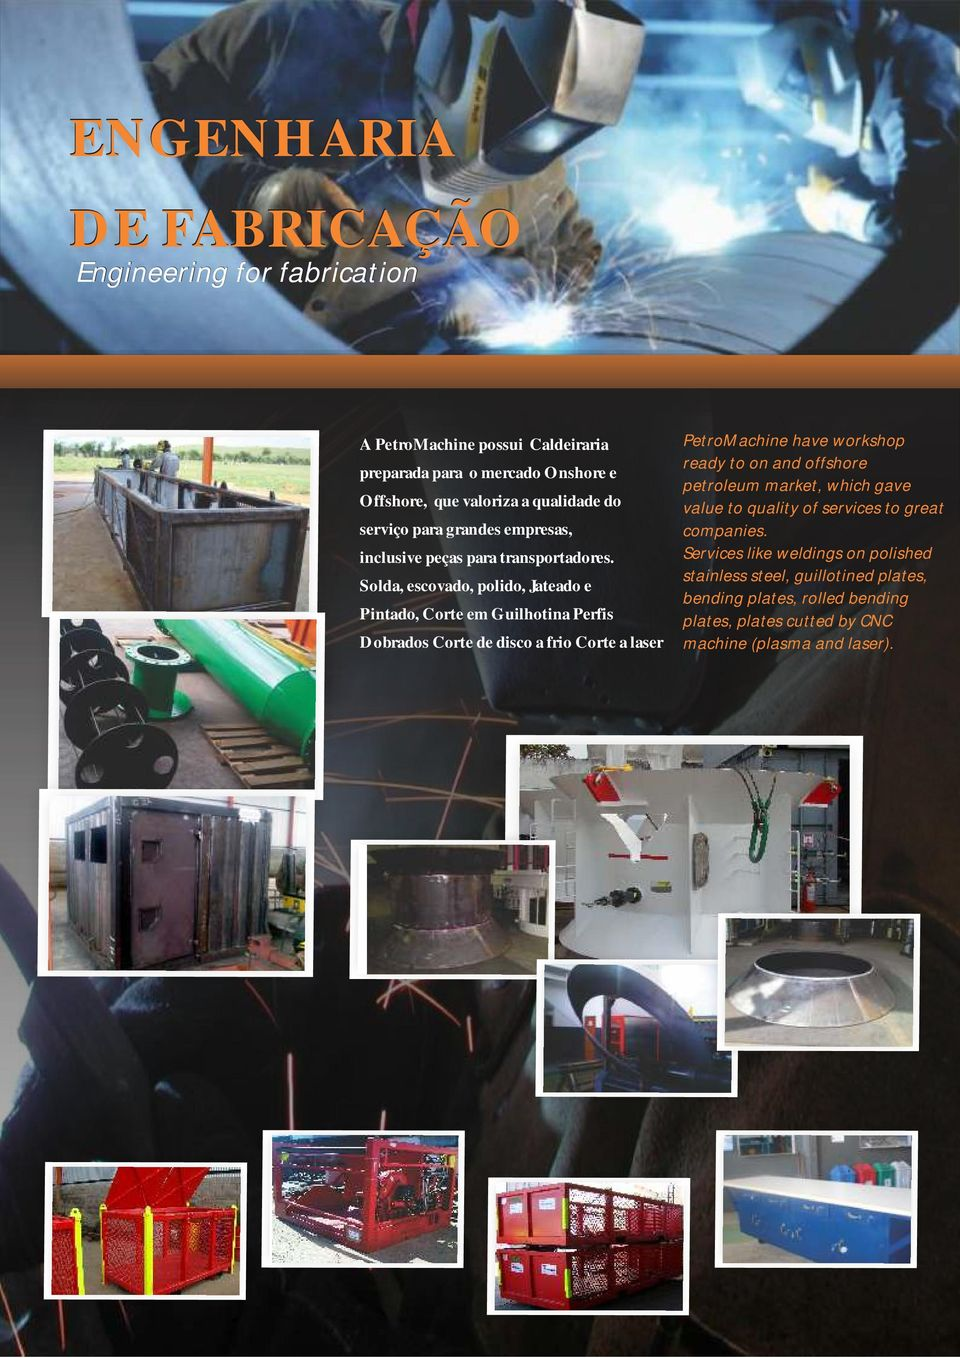 Solda, escovado, polido, Jateado e Pintado, Corte em Guilhotina Perfis Dobrados Corte de disco a frio Corte a laser PetroMachine have workshop ready to on and